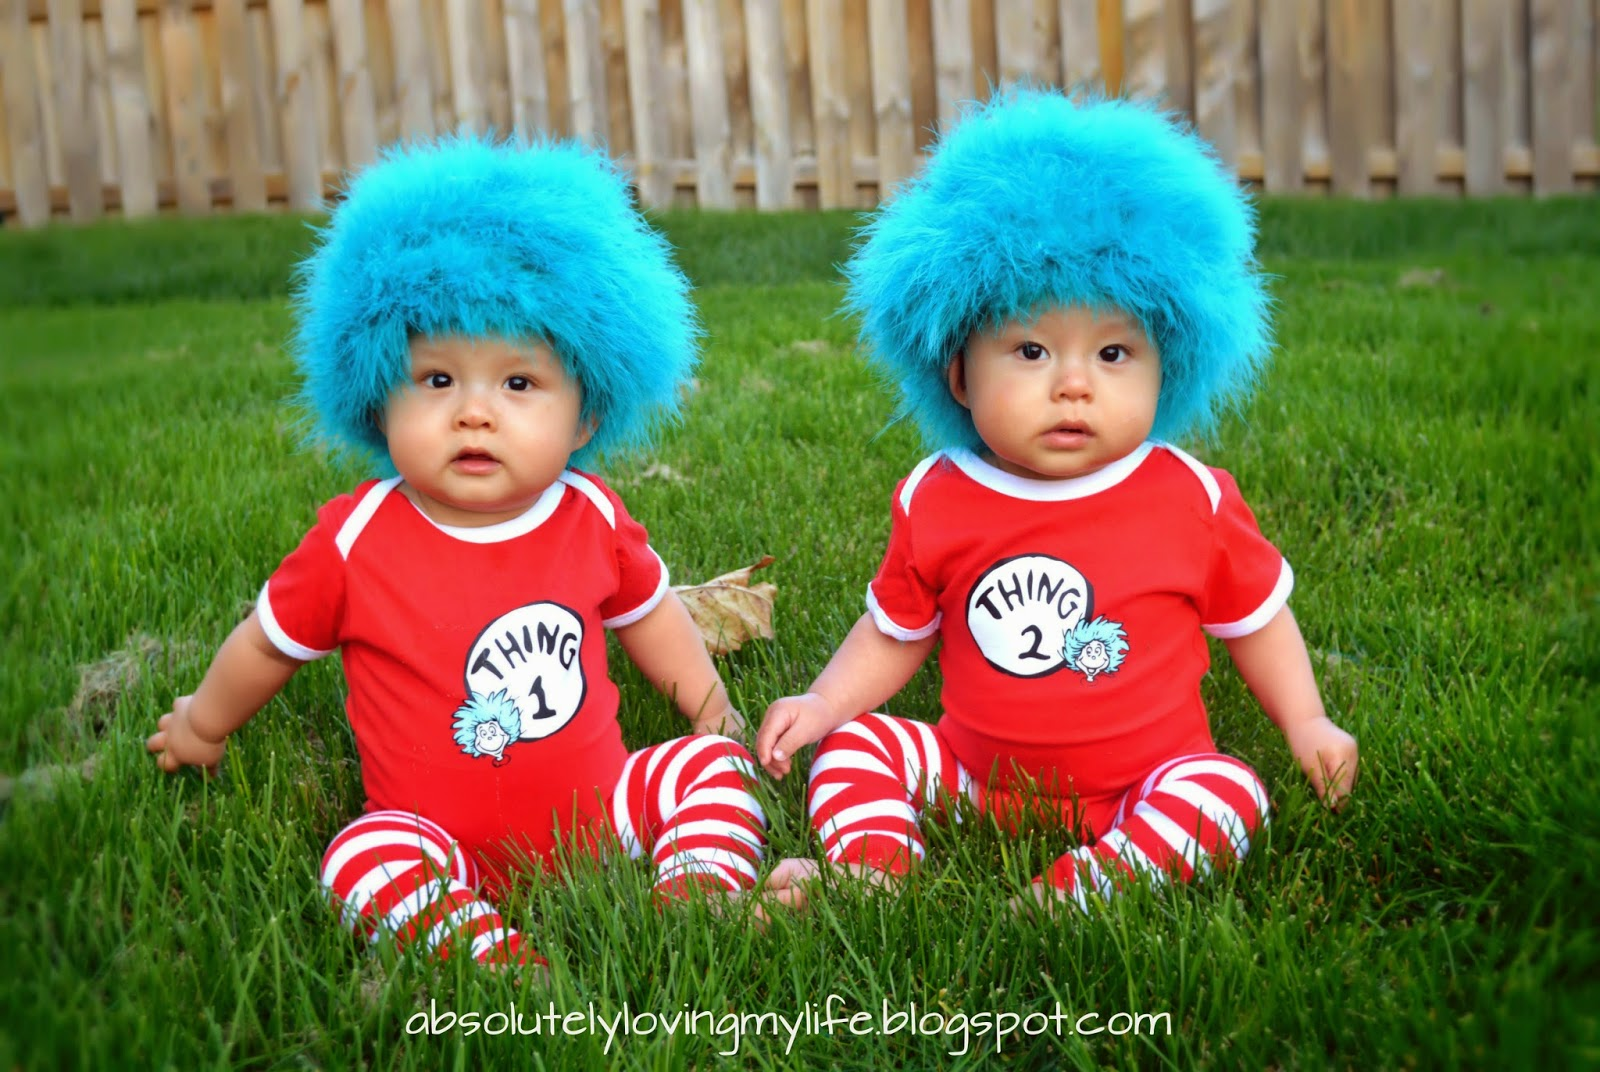 Loving Life  DIY Thing 1 and Thing 2 Baby Costumes 322c91c455